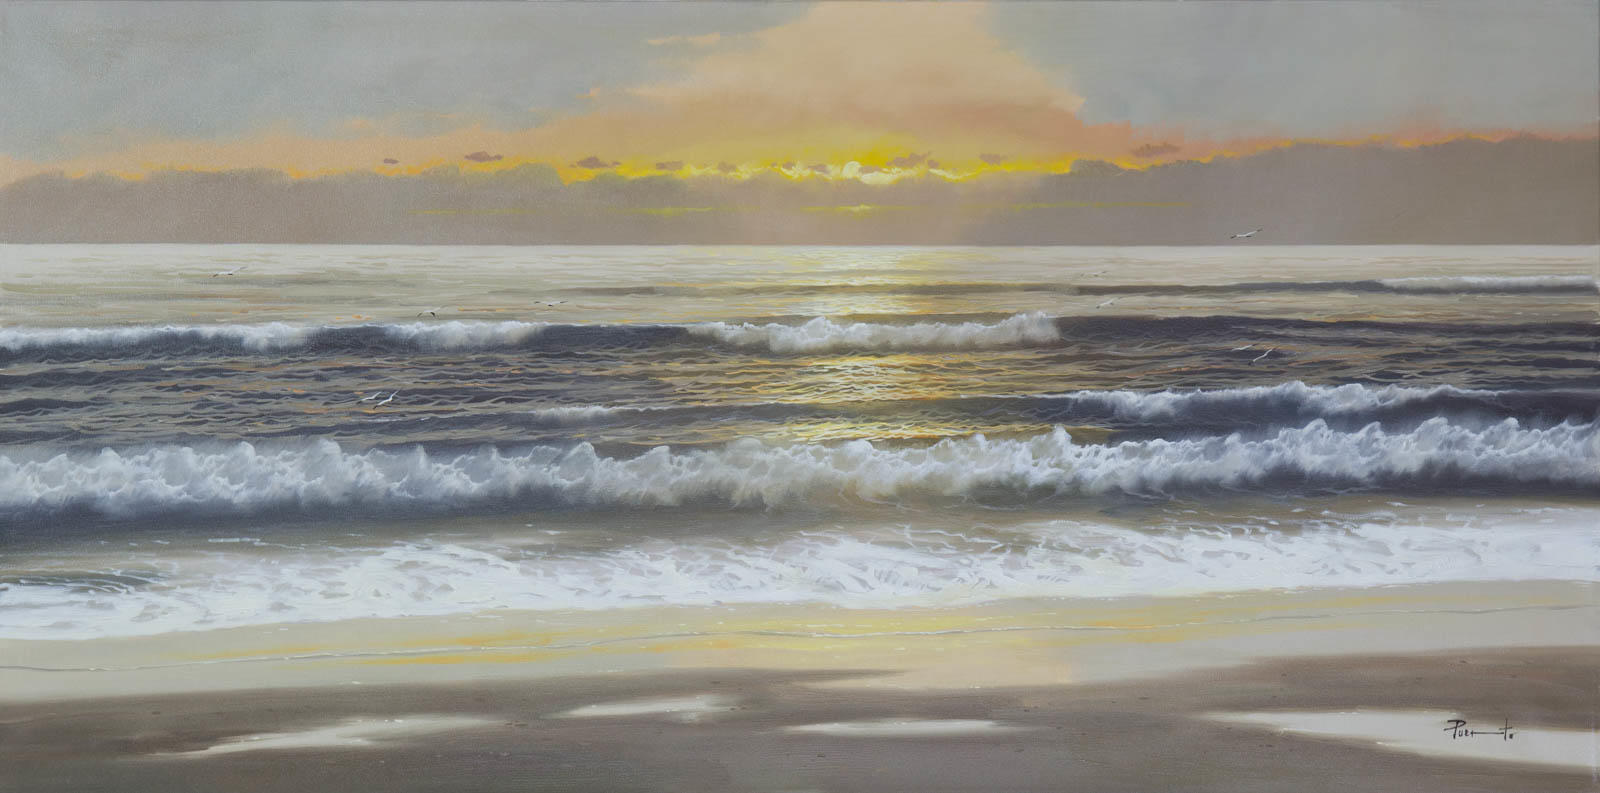 Peaceful Sea, Joan Puerto